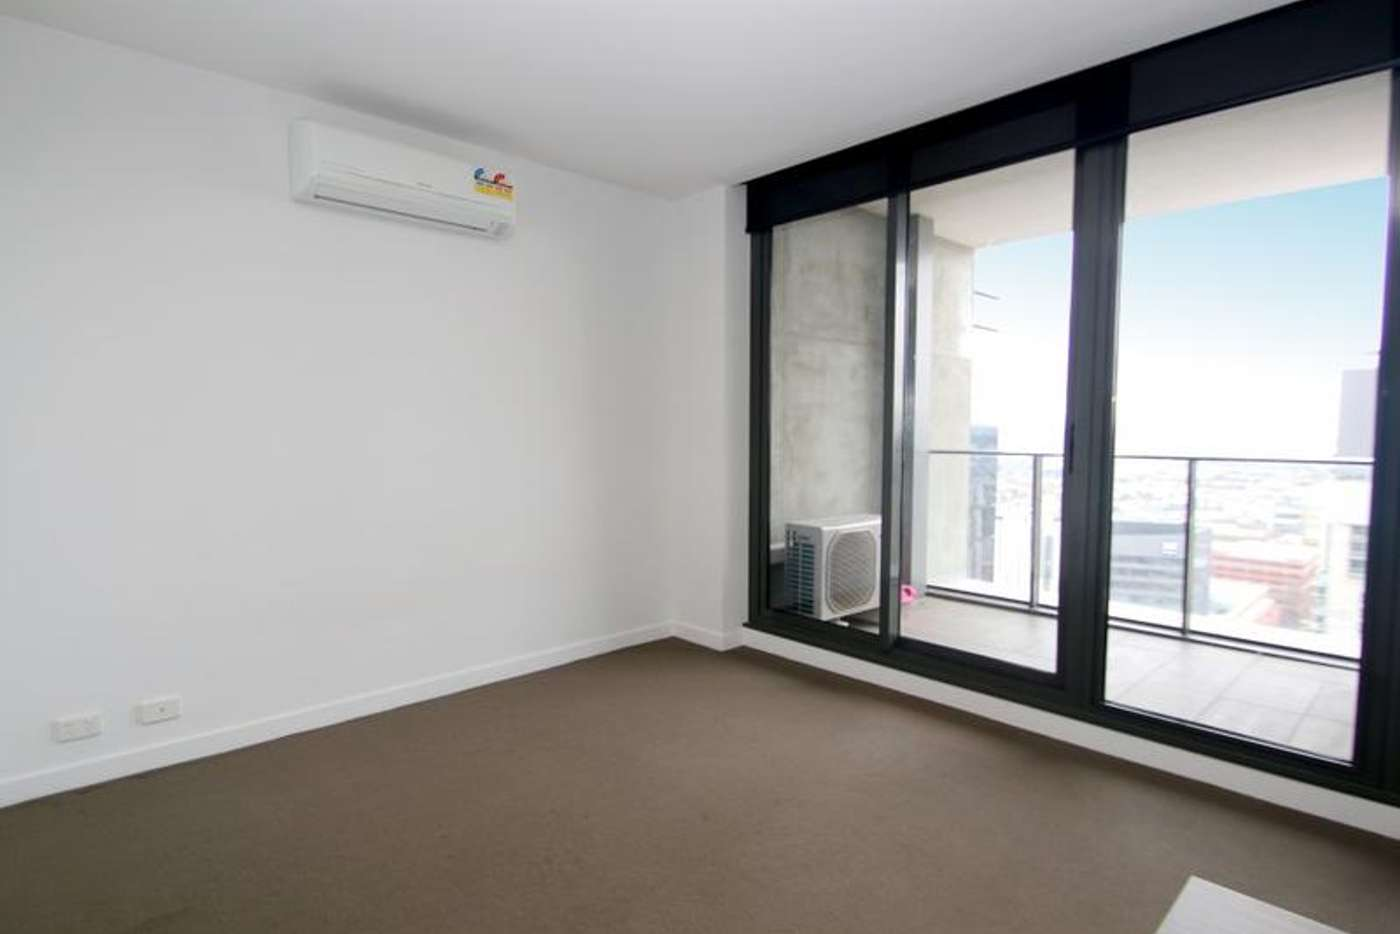 Seventh view of Homely apartment listing, 3218/220 Spencer Street, Melbourne VIC 3000